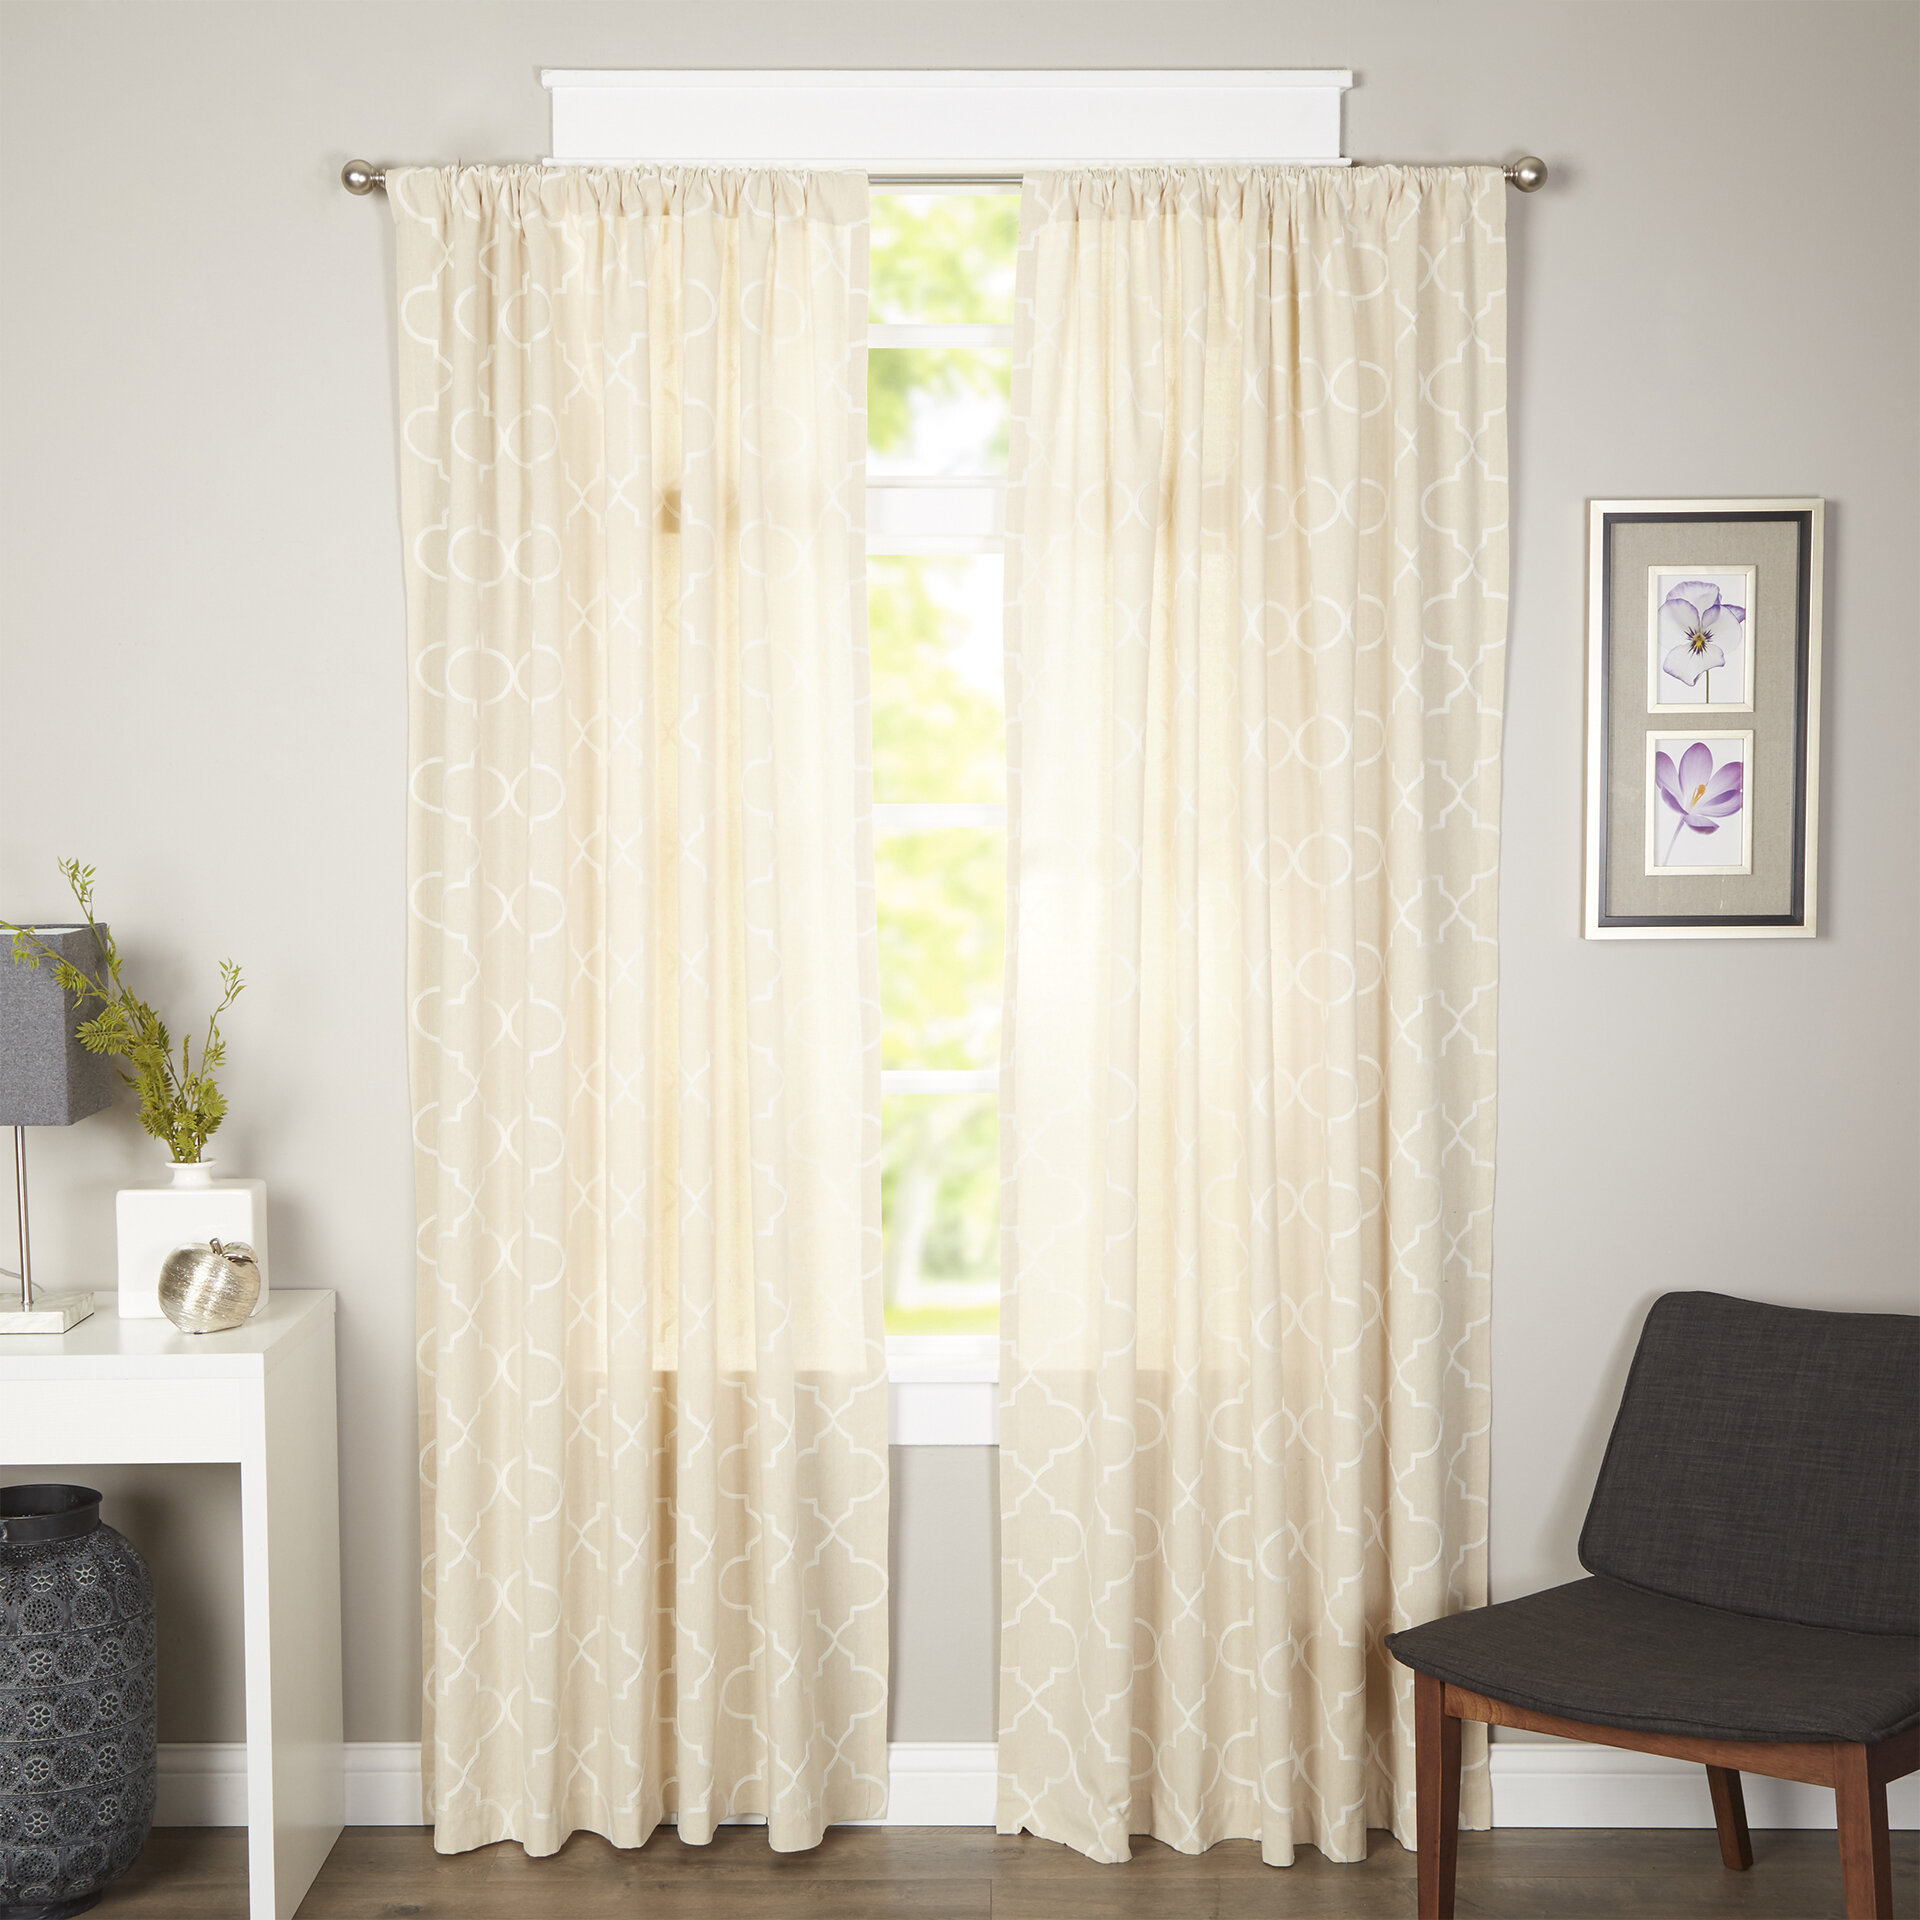 com inch cheap curtain curtains pole damask pin manchester per panels curtainworks x panel top